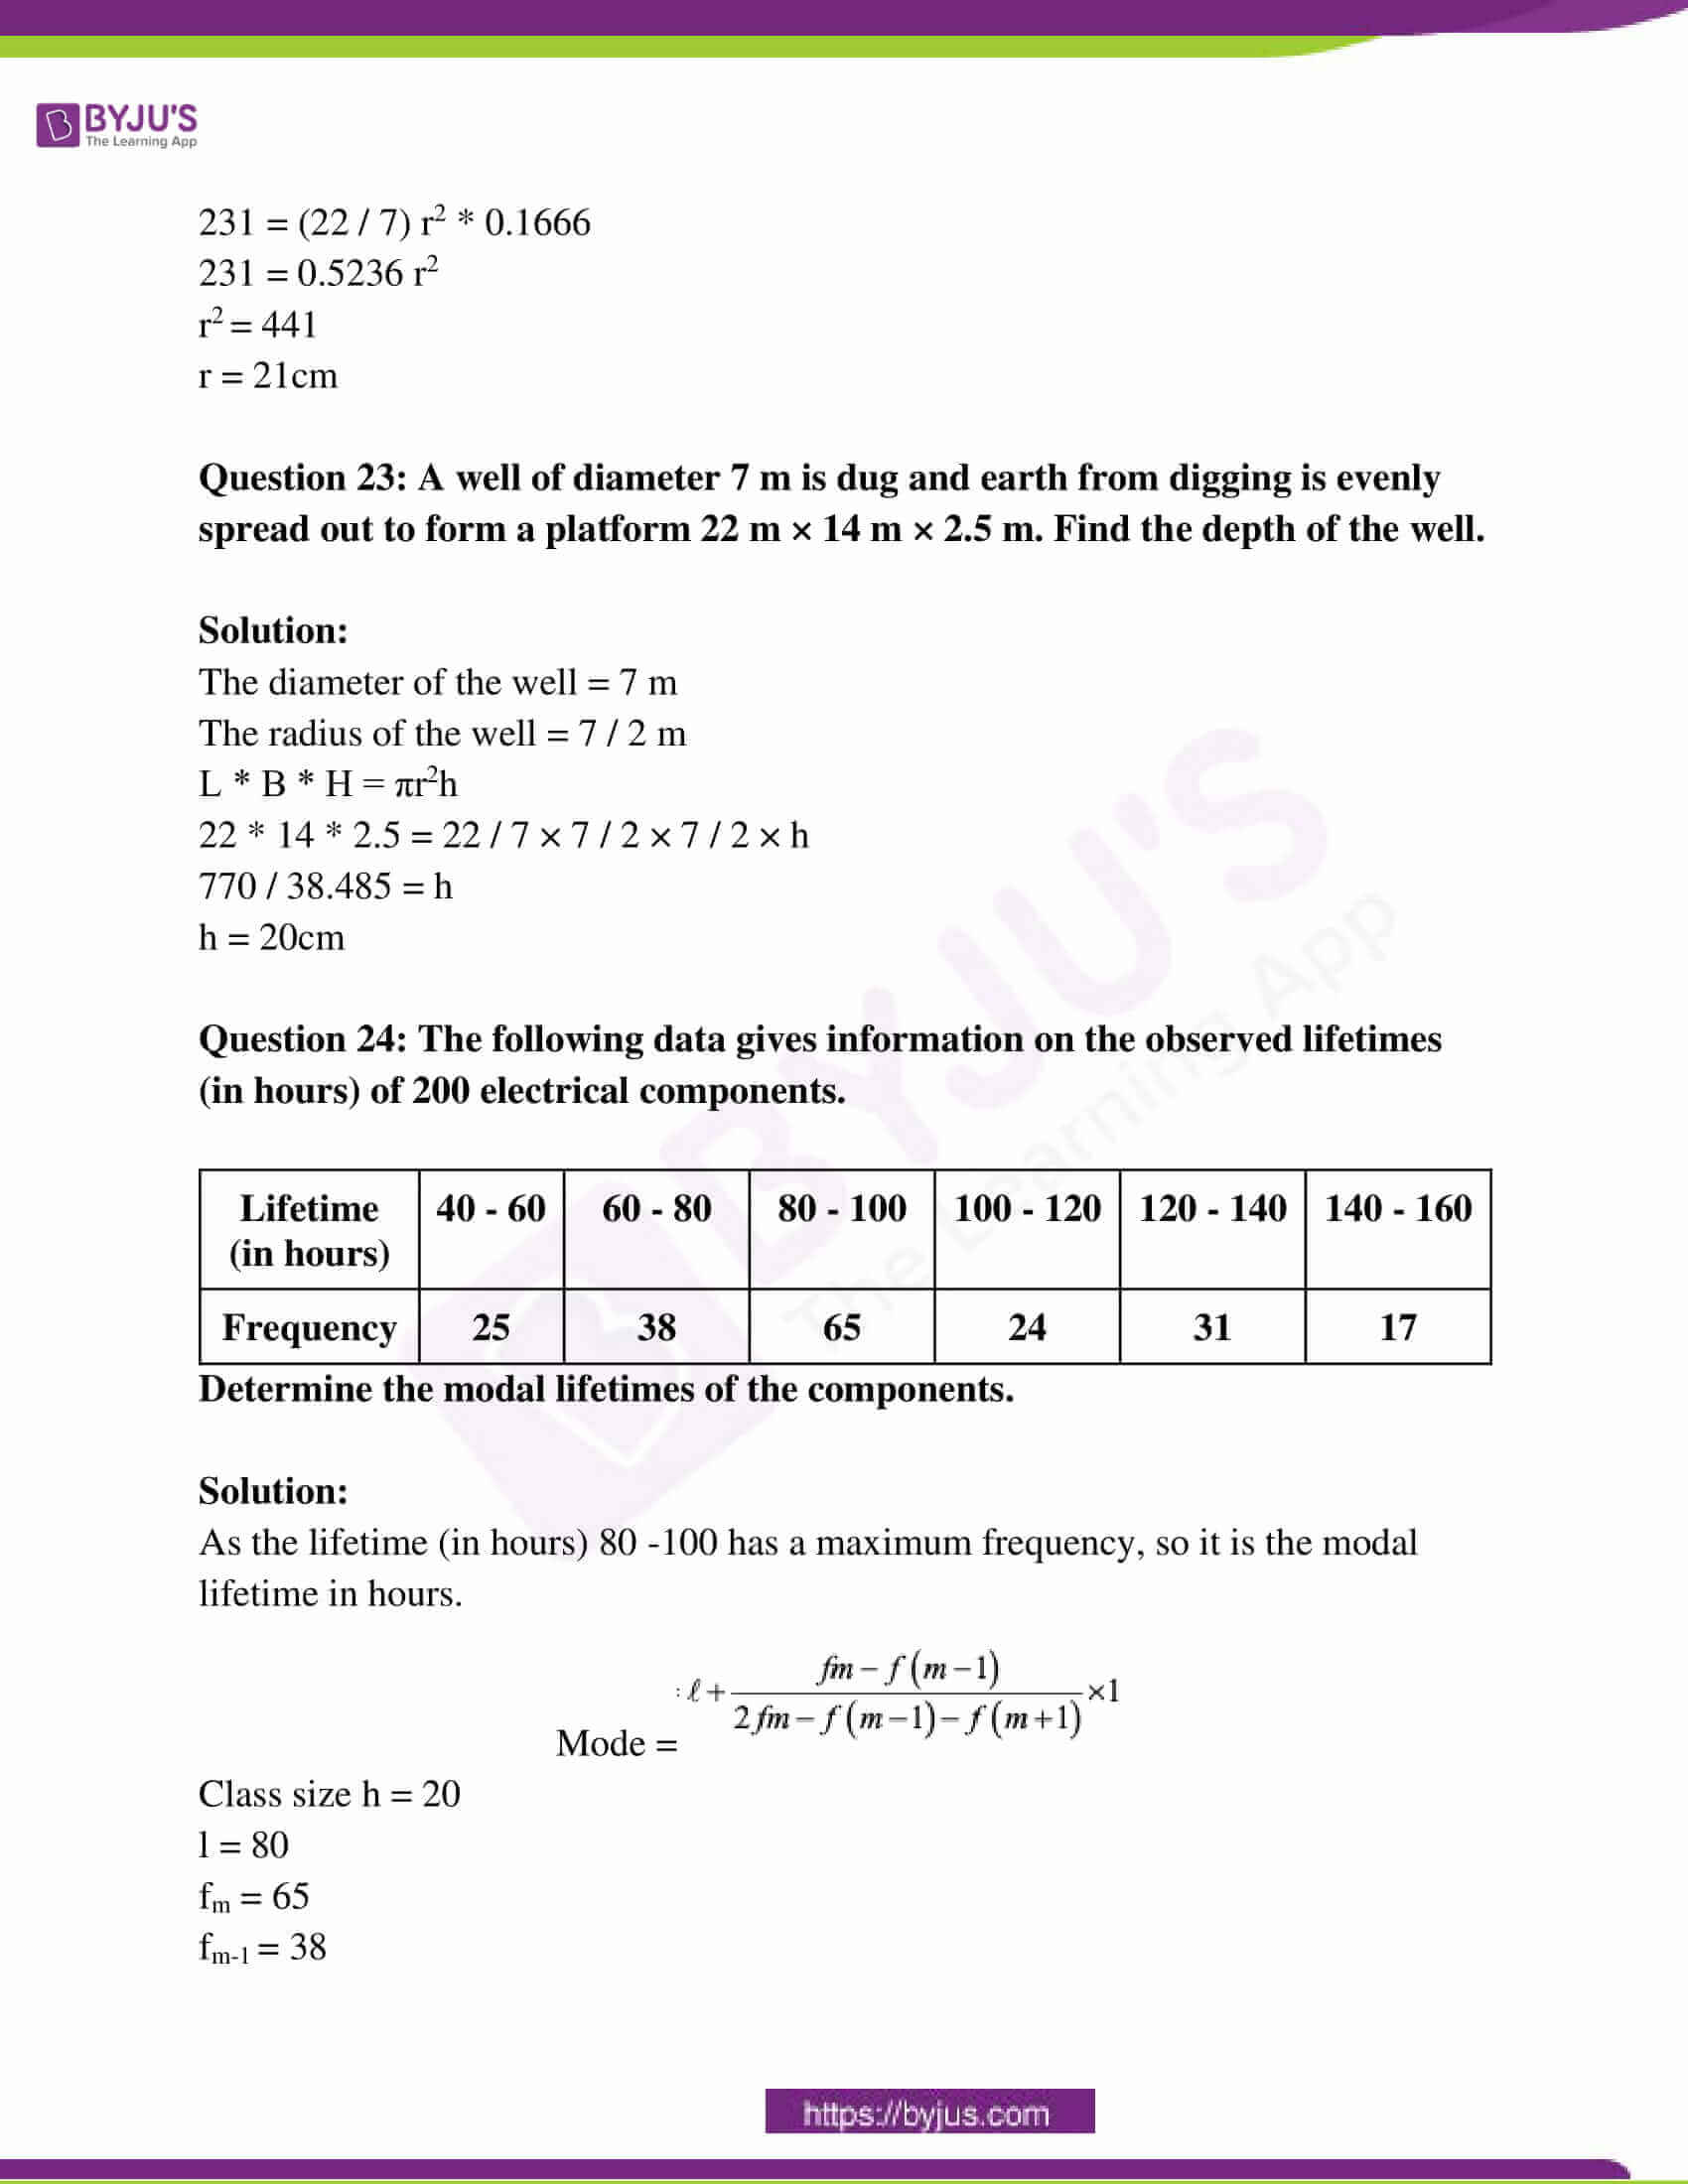 rajasthan board class 10 examination question paper sol march 2017 13